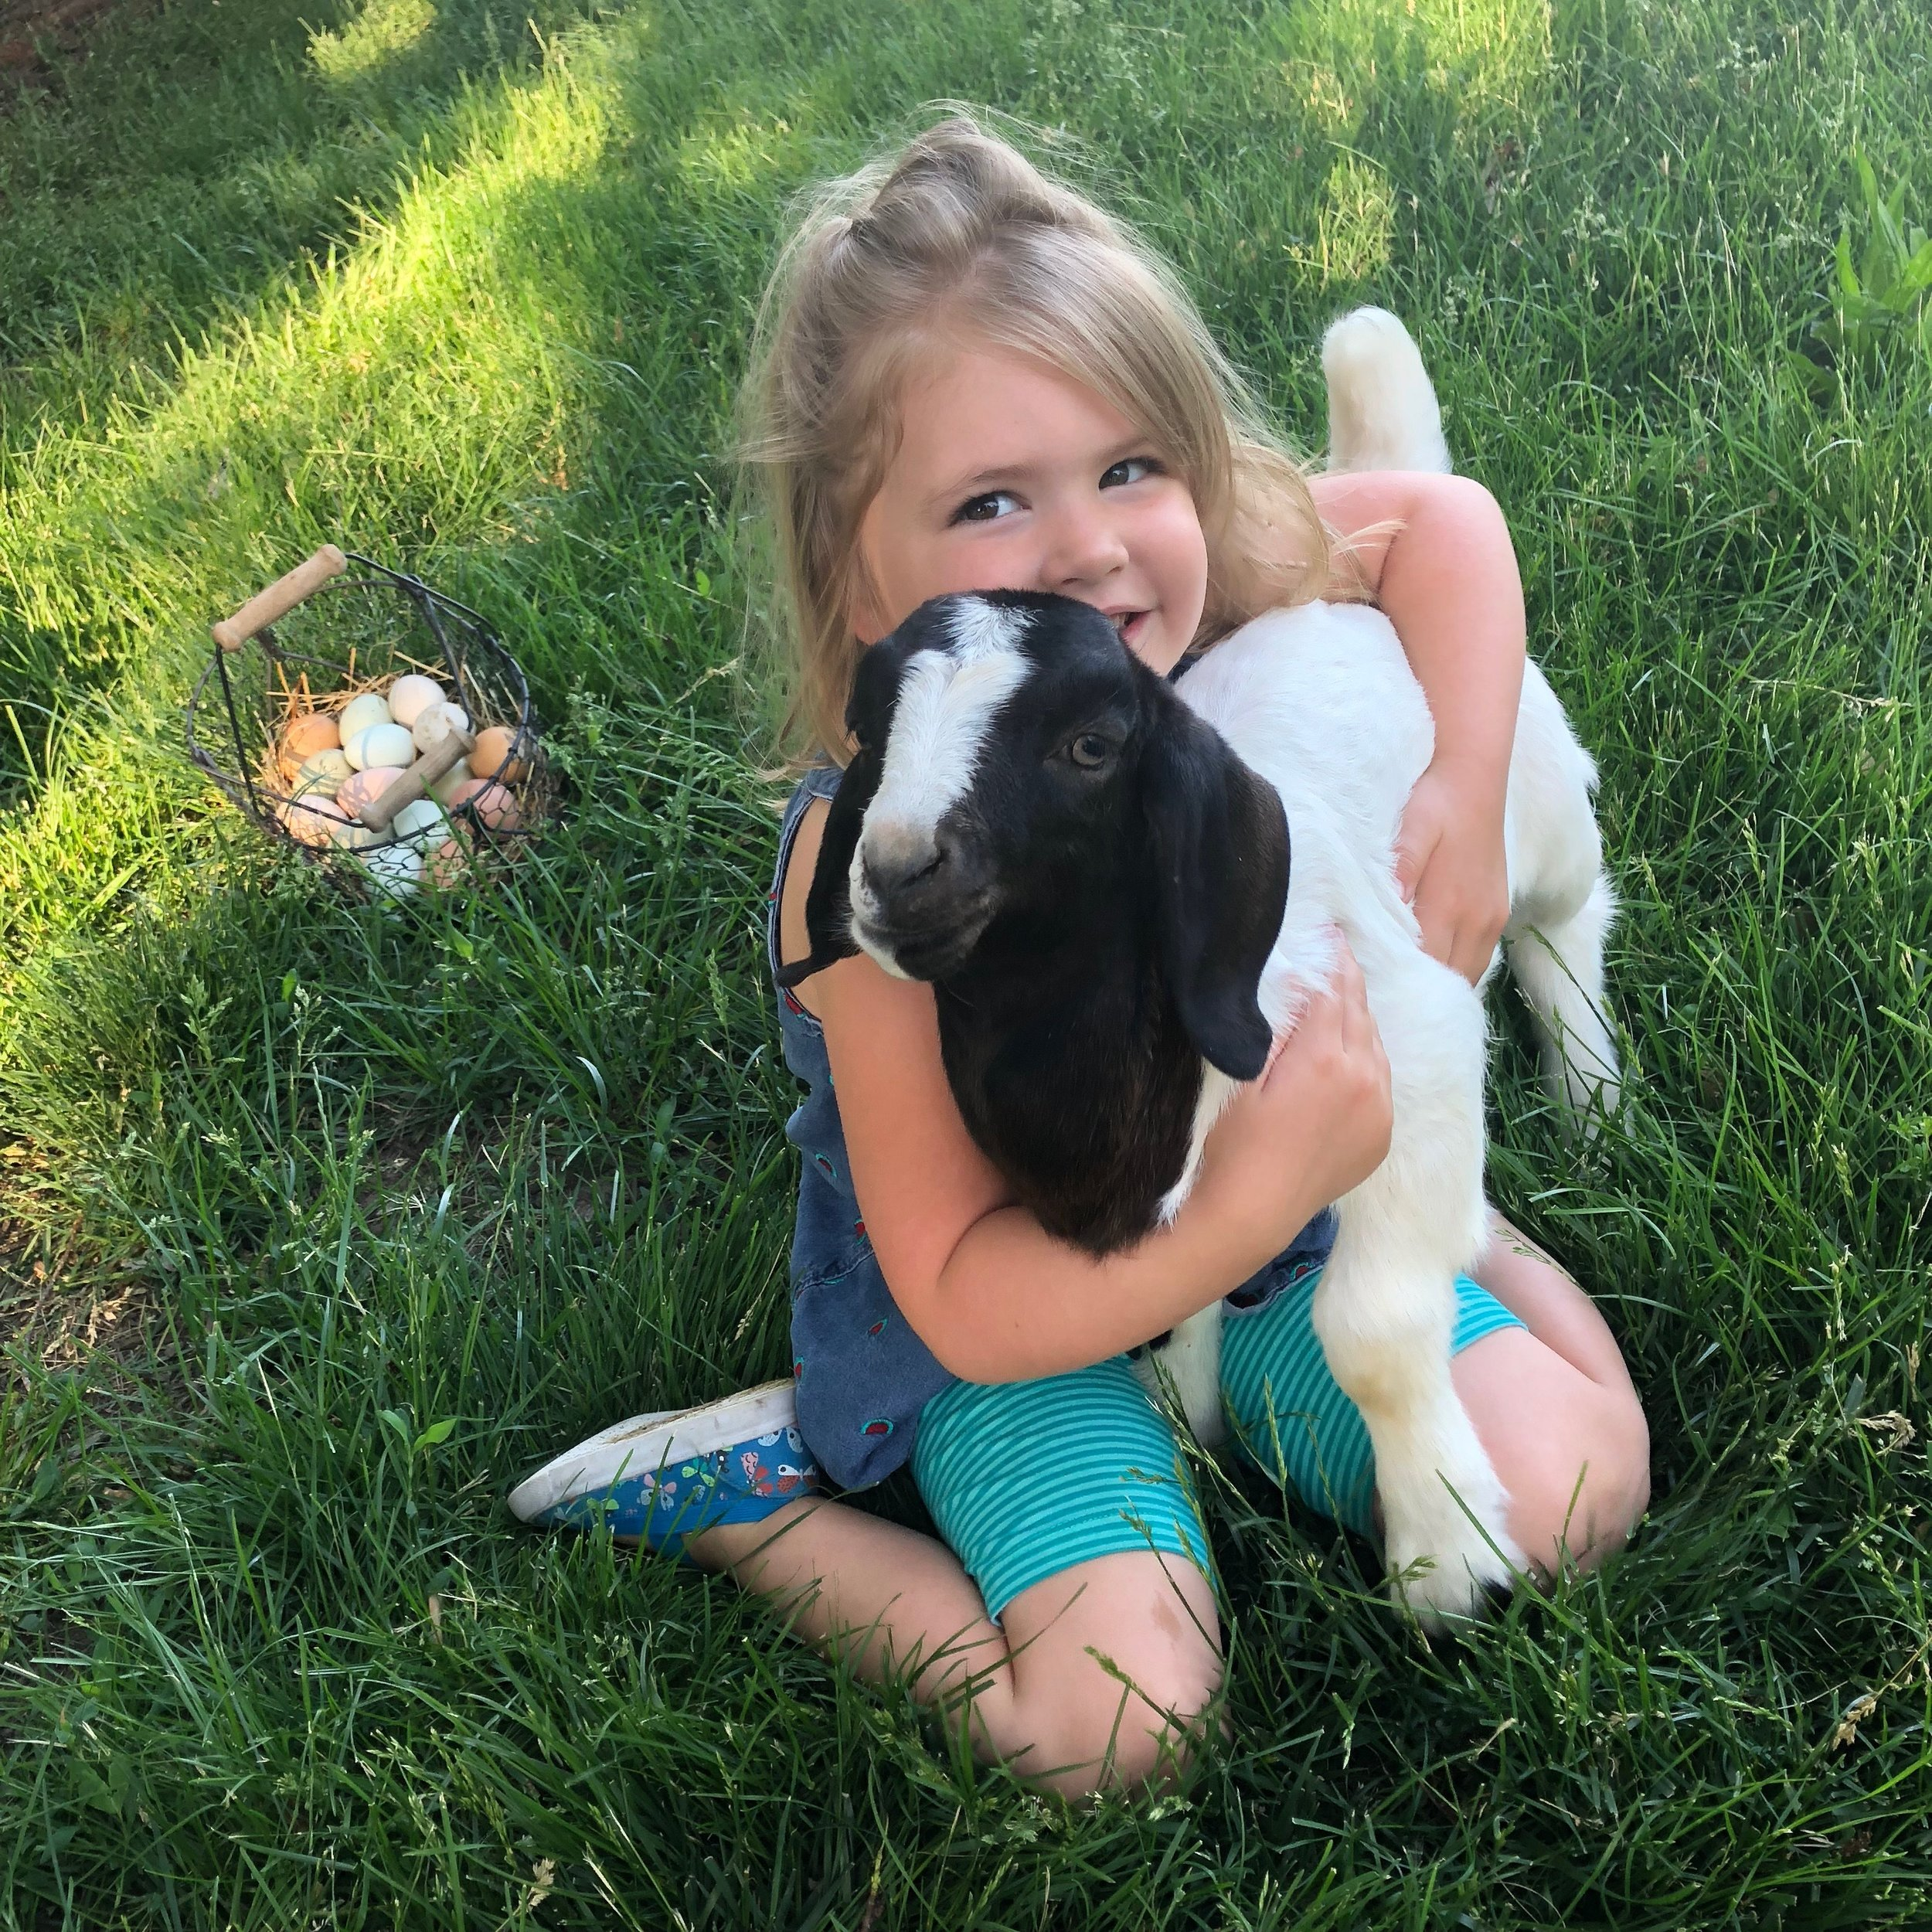 Our main helper, Maisy, and her favorite baby goat, Mancha.